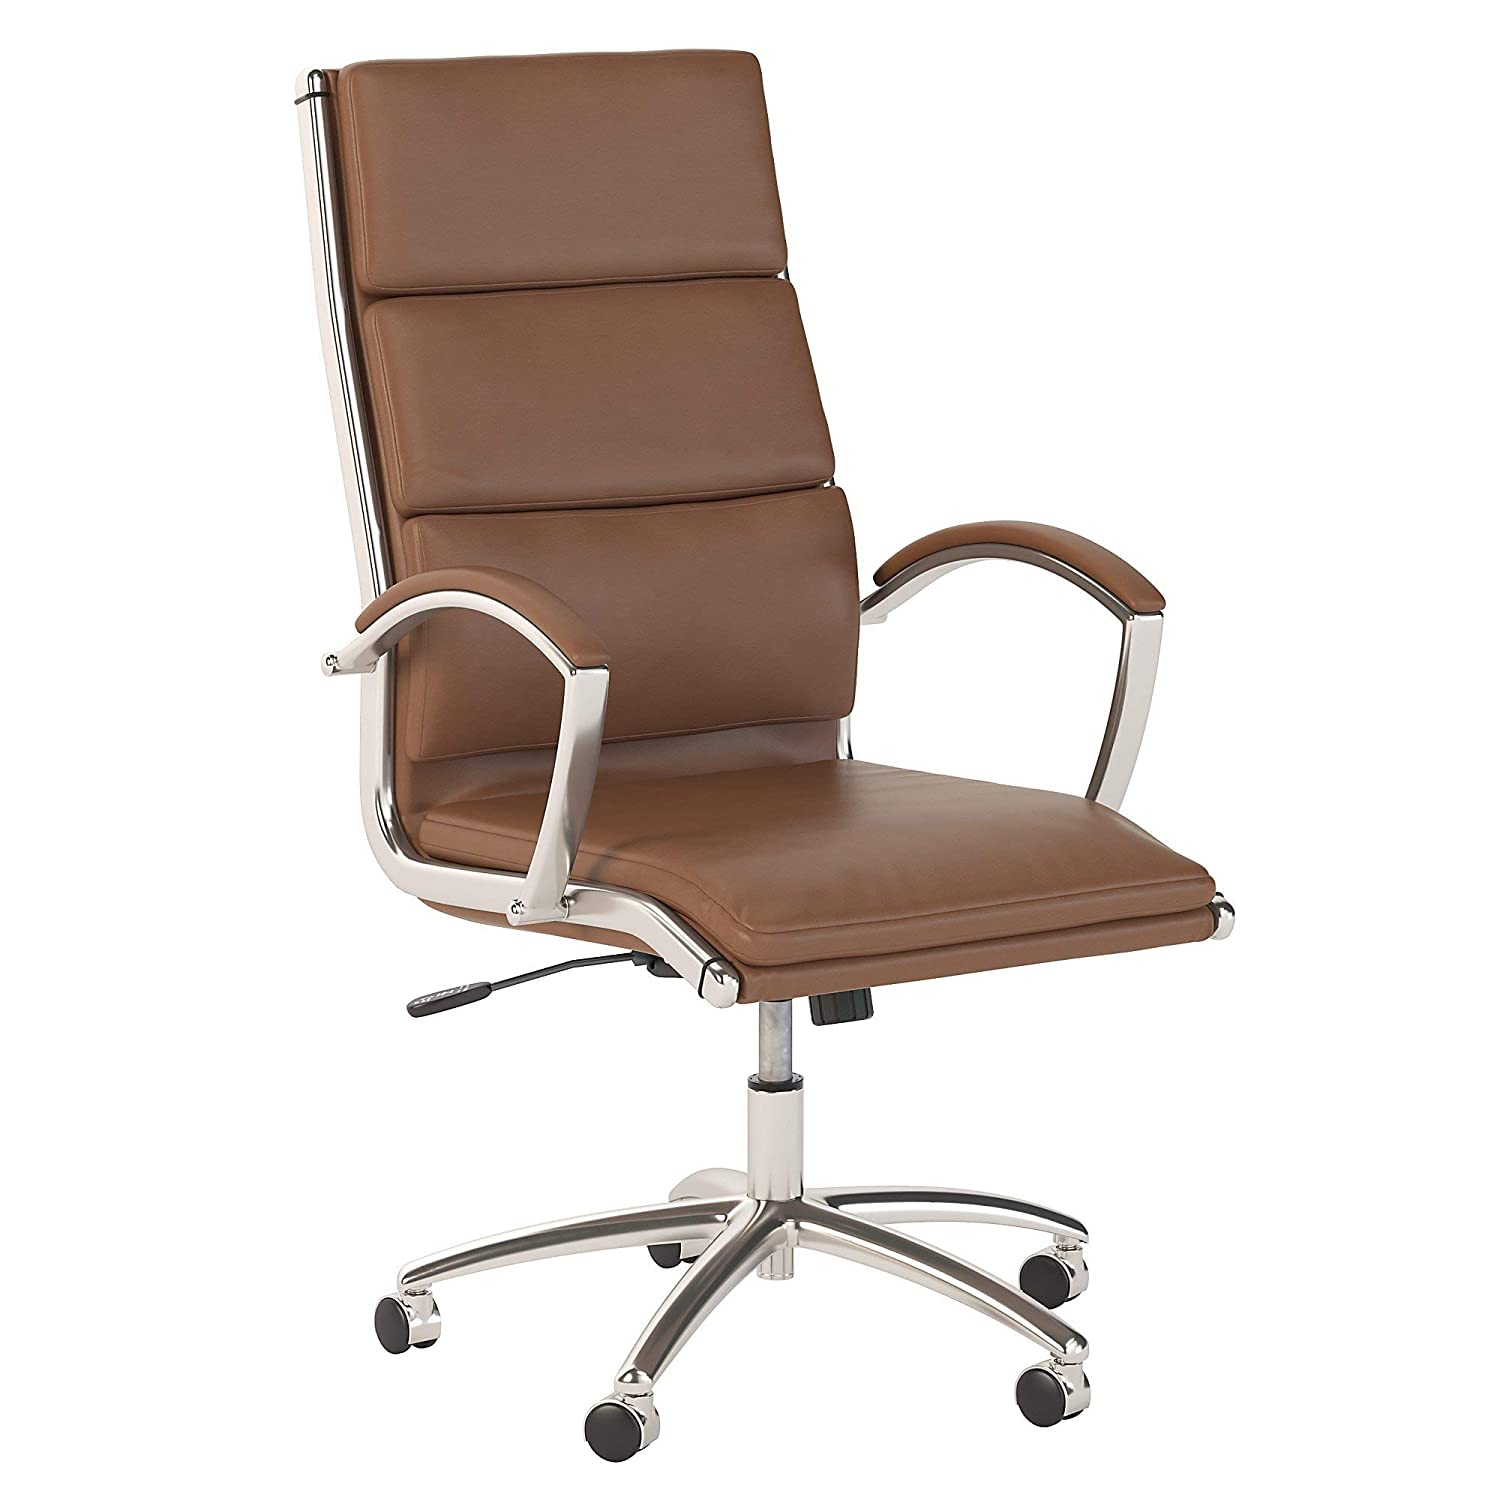 Bush Business Furniture Modelo High Back Leather Executive Office Chair in Saddle Tan